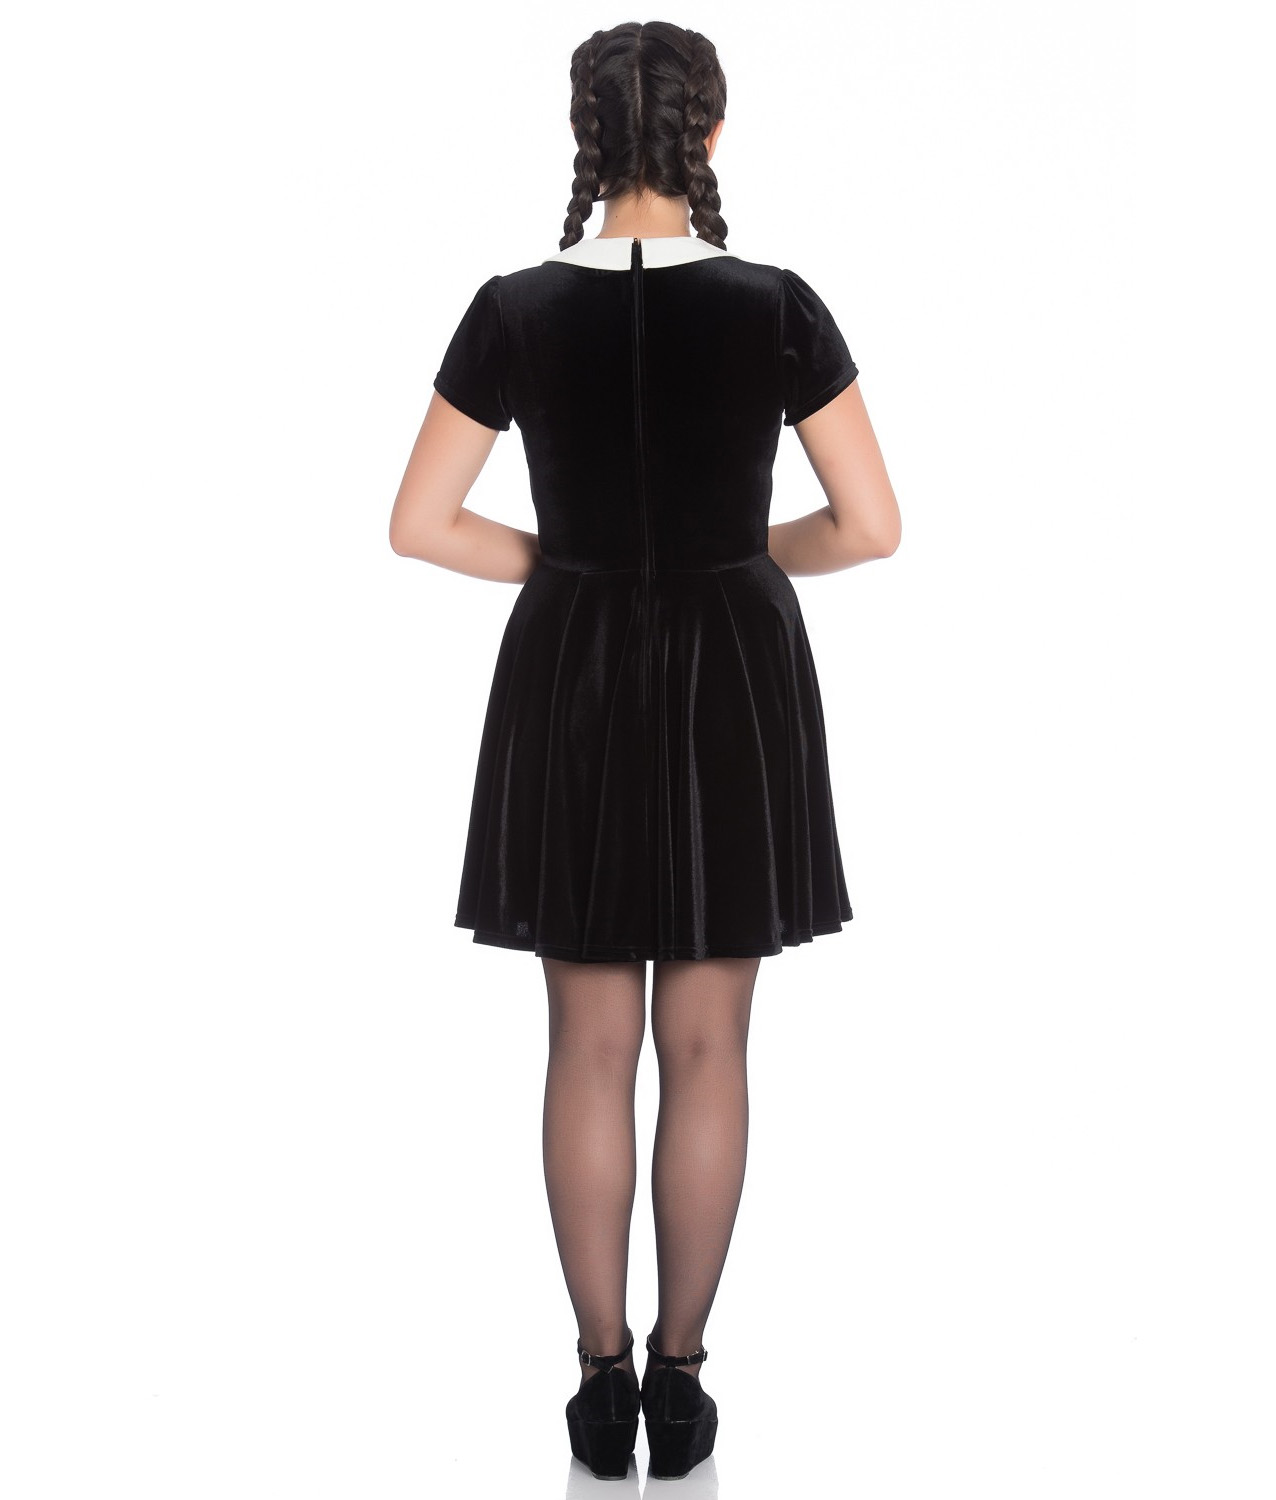 Hell-Bunny-Gothic-Mini-Skater-Dress-MISS-MUFFET-Spiders-Black-Velvet-All-Sizes thumbnail 25